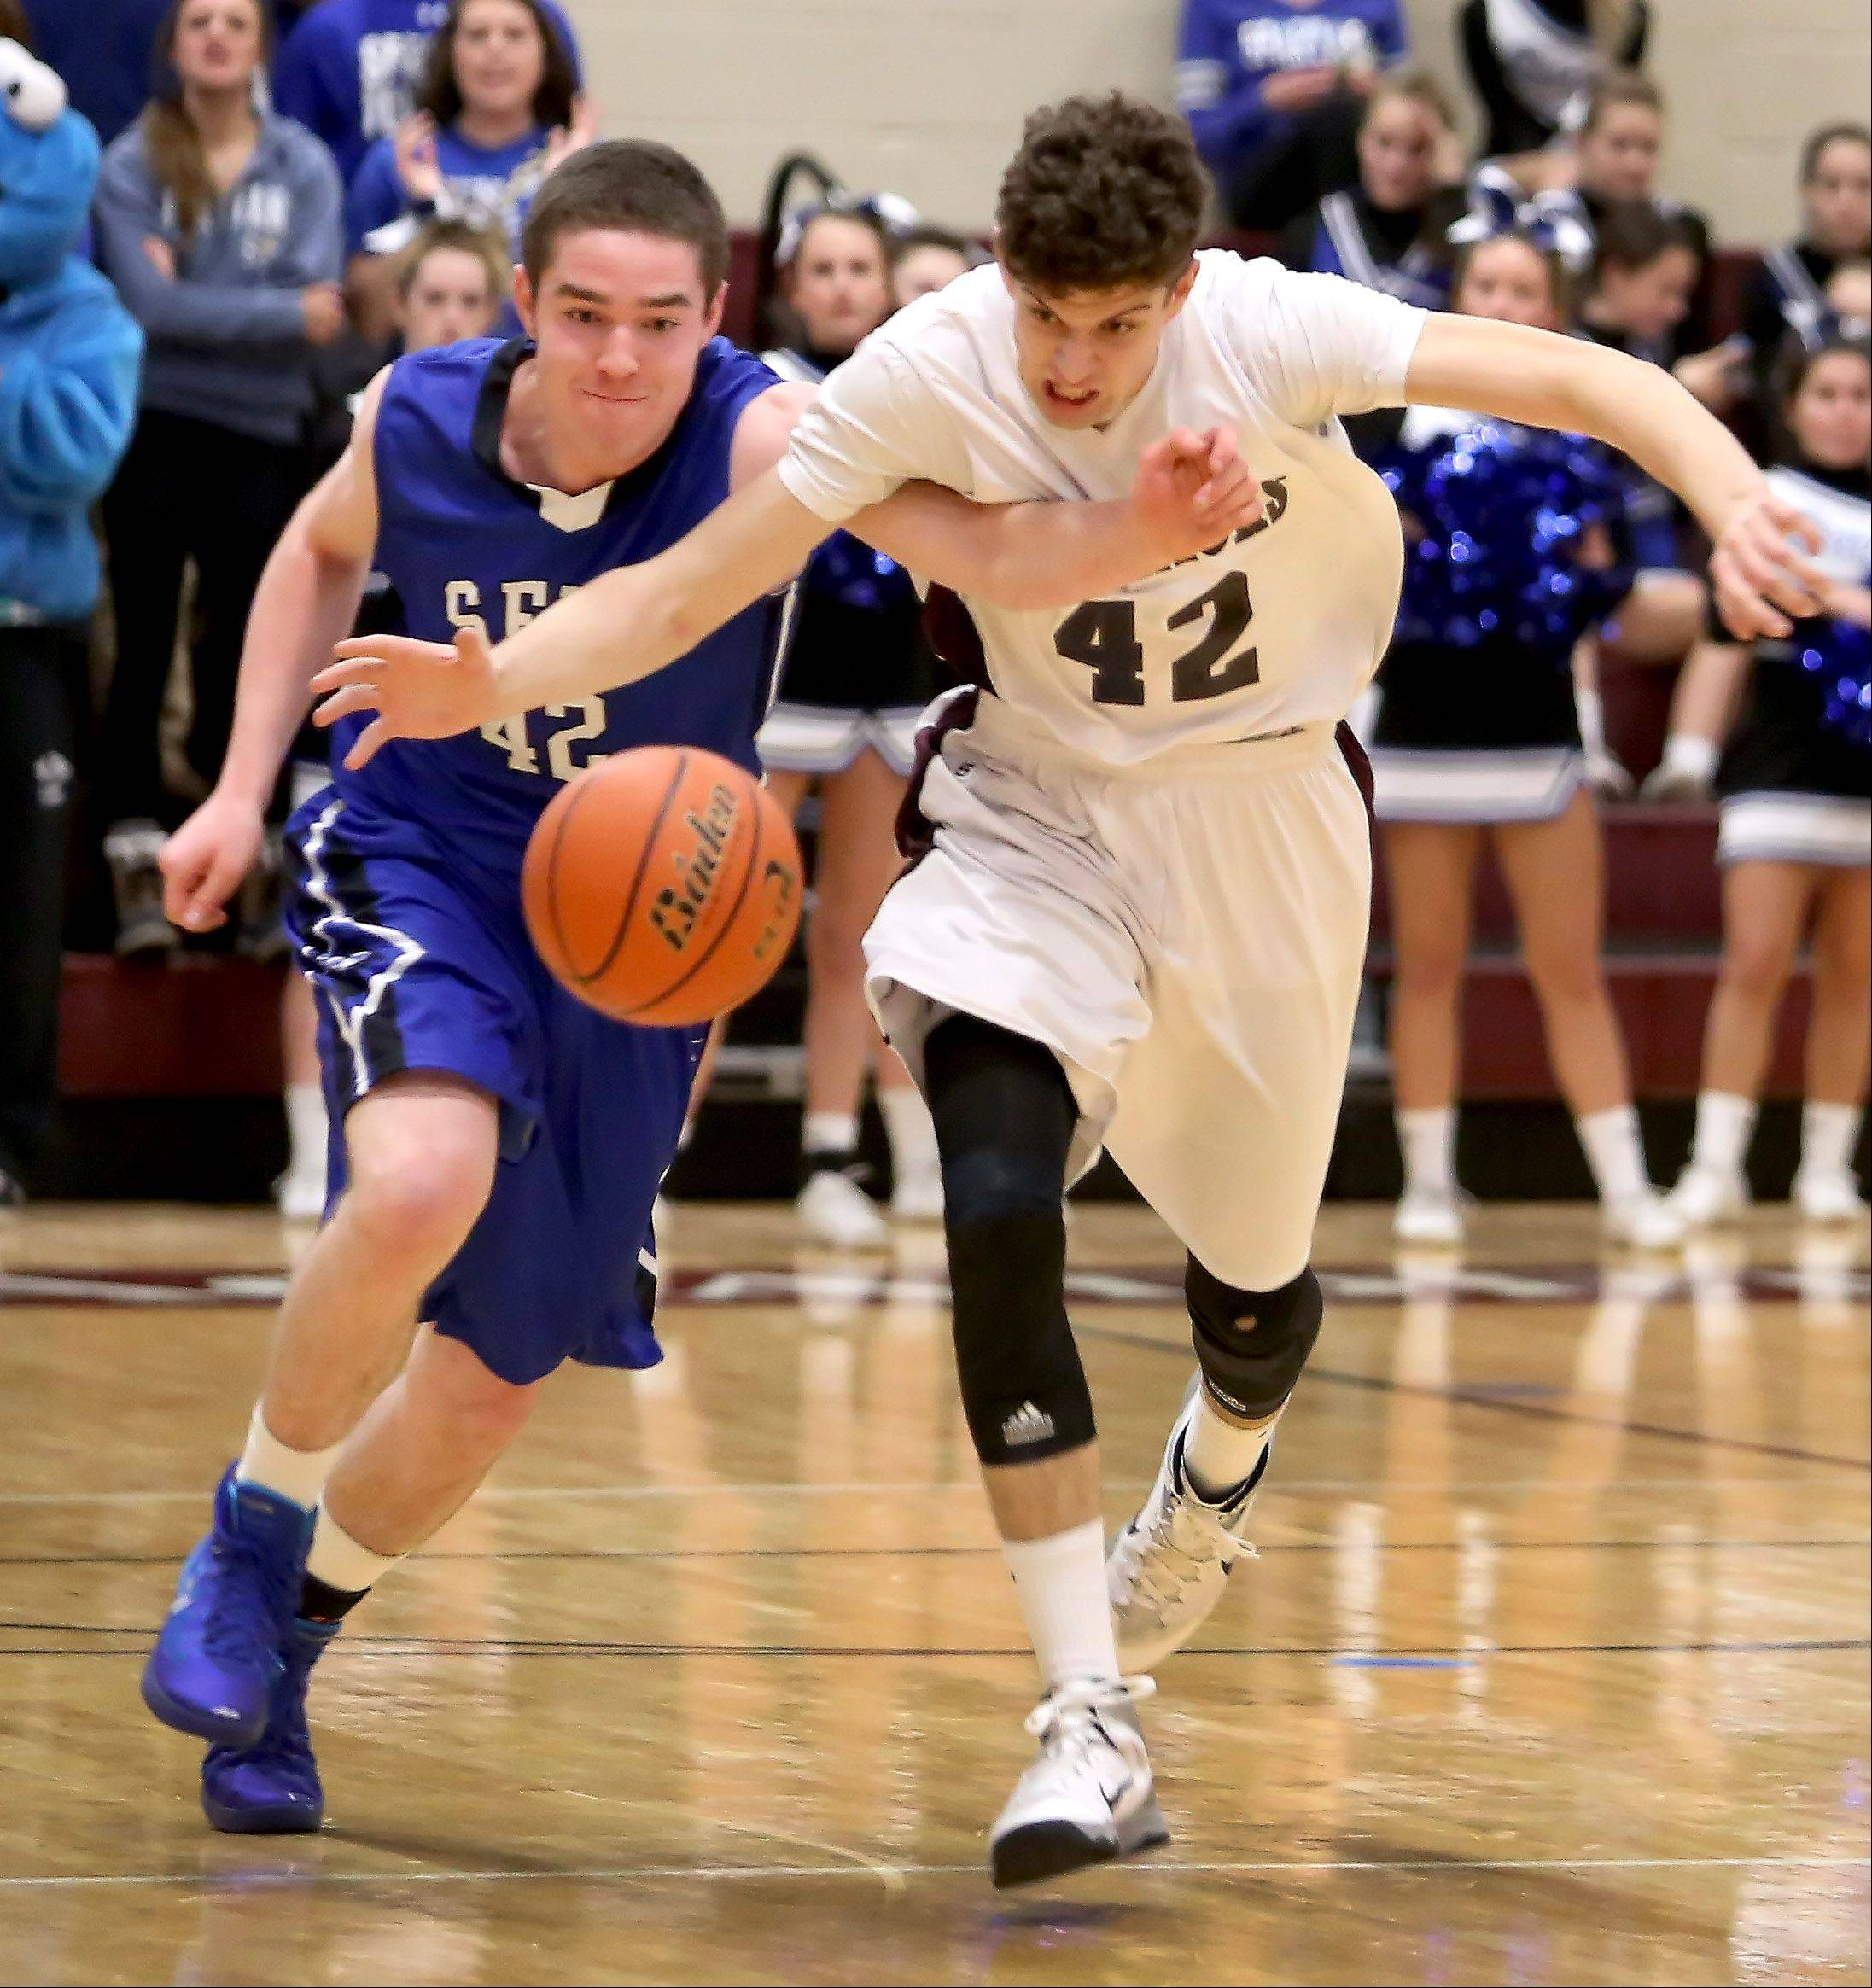 St. Francis's Kilian Brown, left, and Wheaton Academy's Chandler Fuzak chase down a loose ball during Tuesday's basketball game in West Chicago.